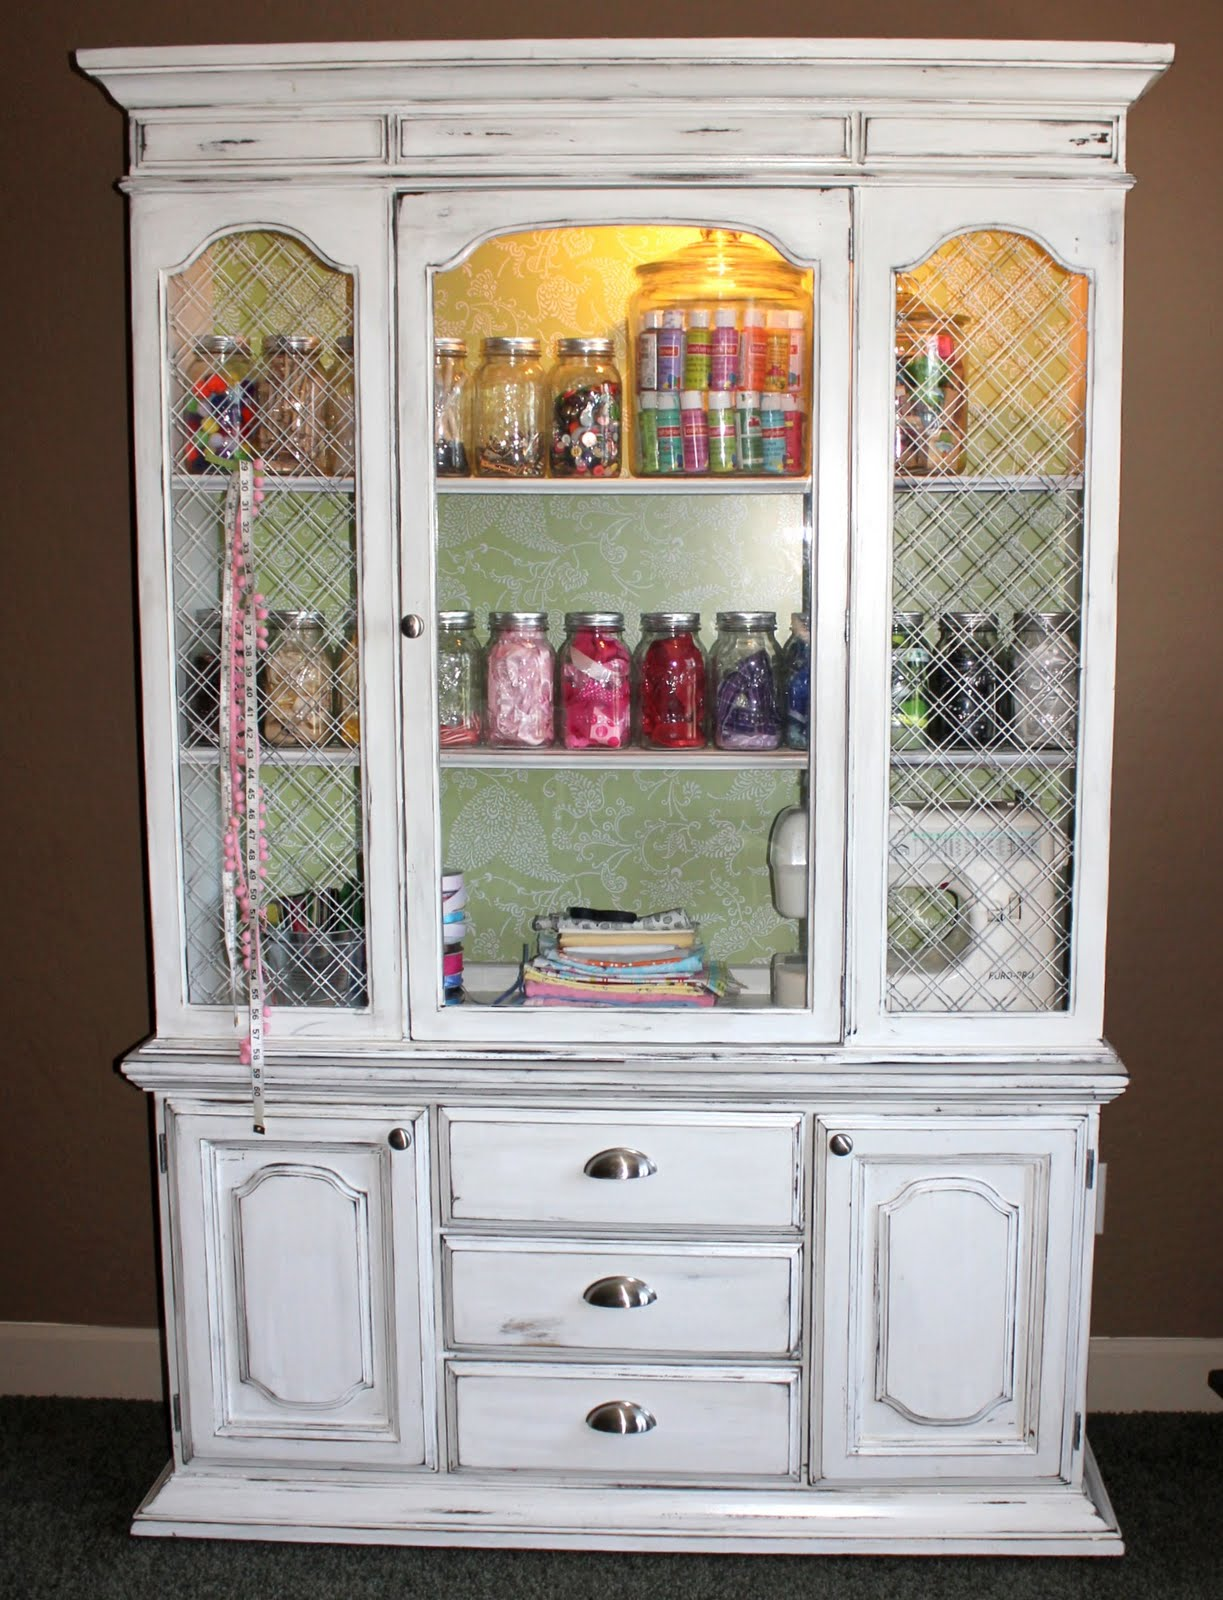 Craft hutch DIY